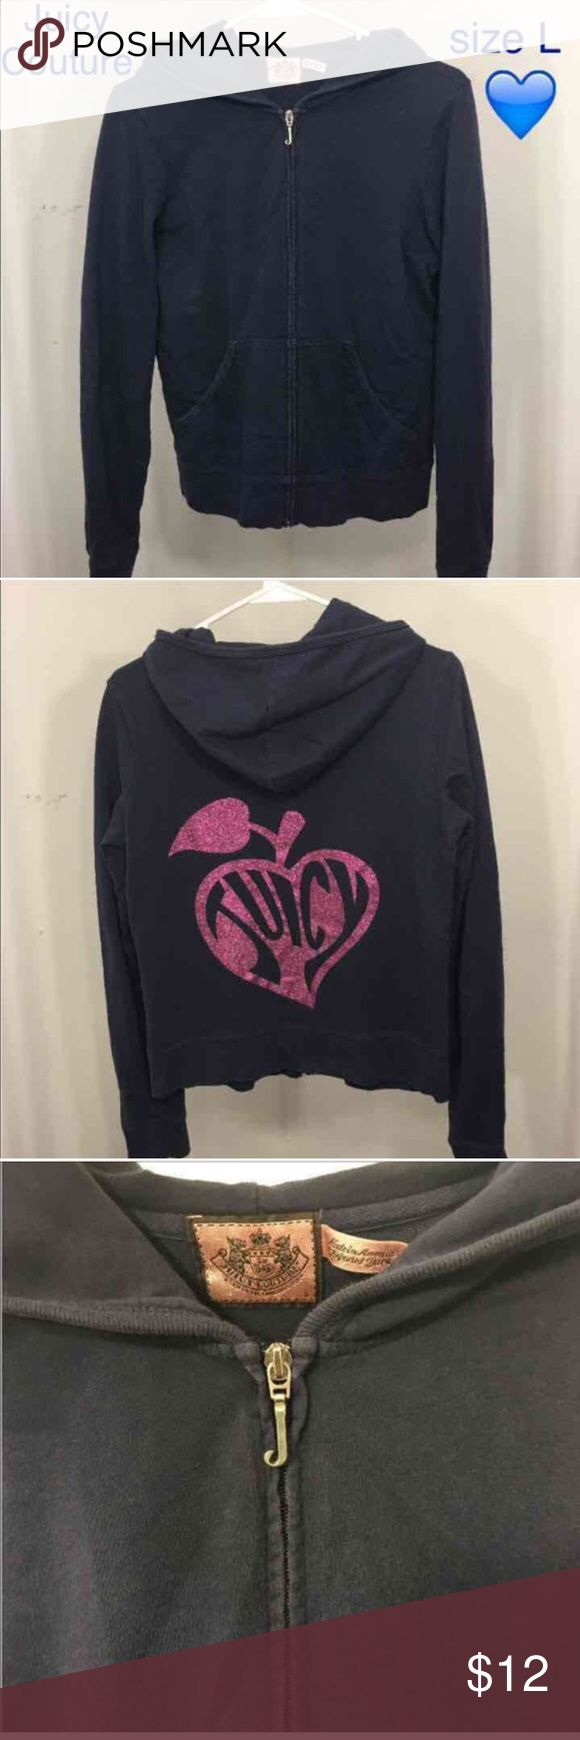 Juicy Couture Navy Zip up jacket-size large Gently worn, excellent condition, pink detailing on the back Juicy Couture Jackets & Coats